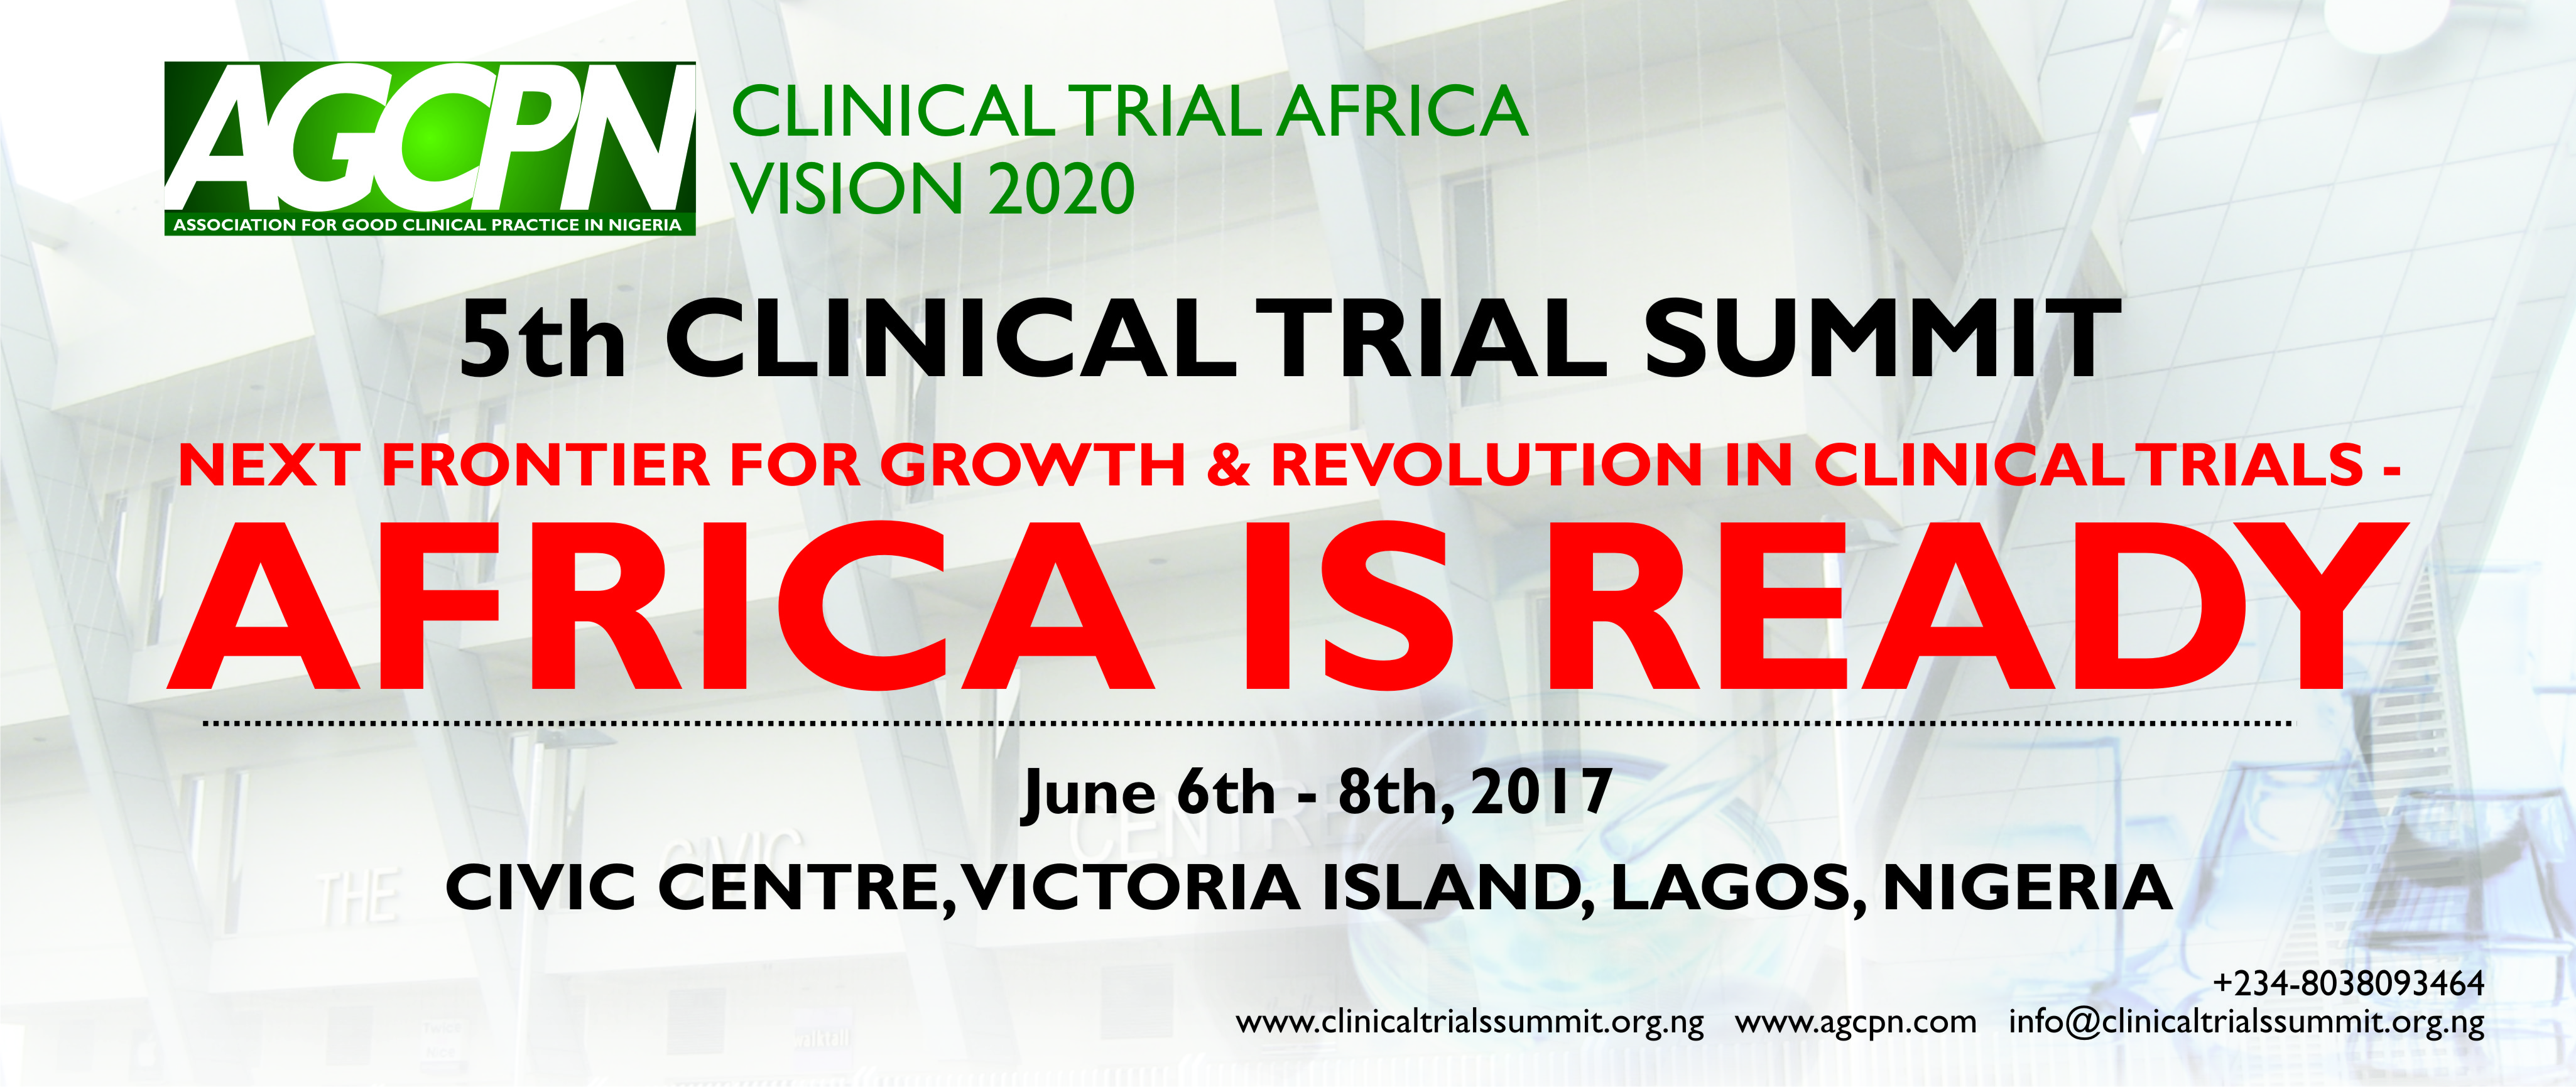 Association for Good Clinical Practice in Nigeria Holds 5th